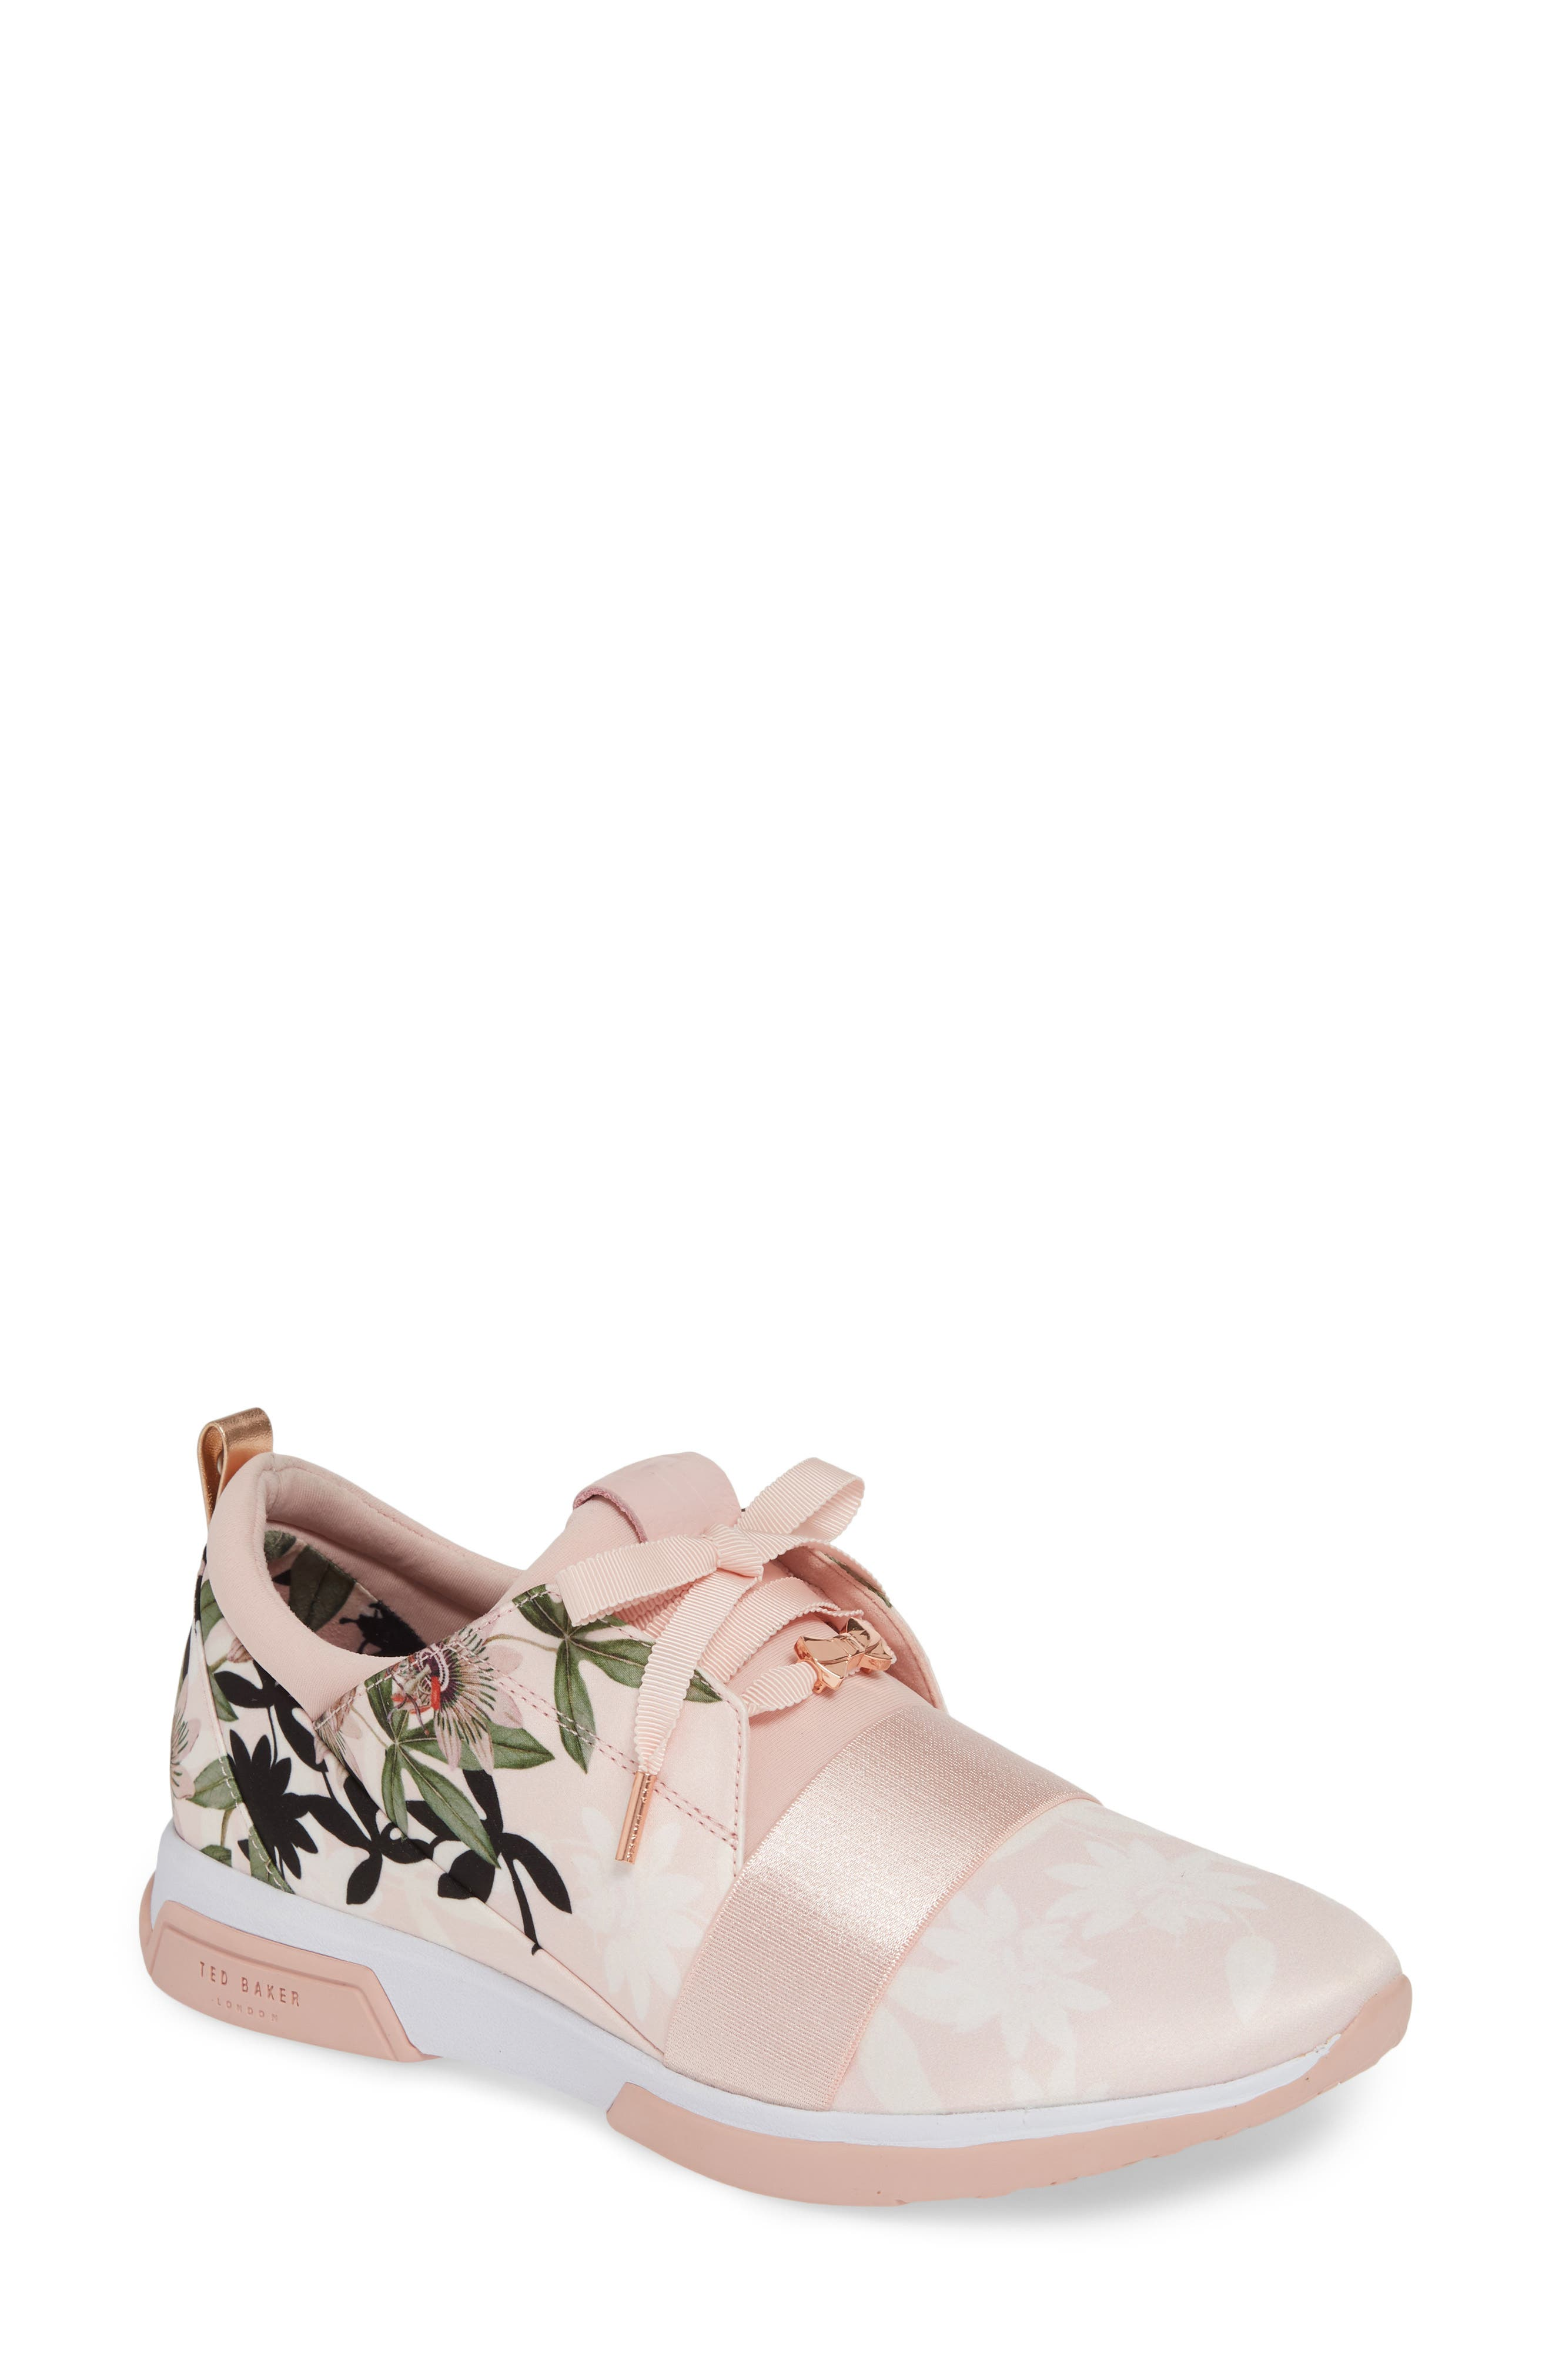 98af67f7a3 Women s Ted Baker London Shoes